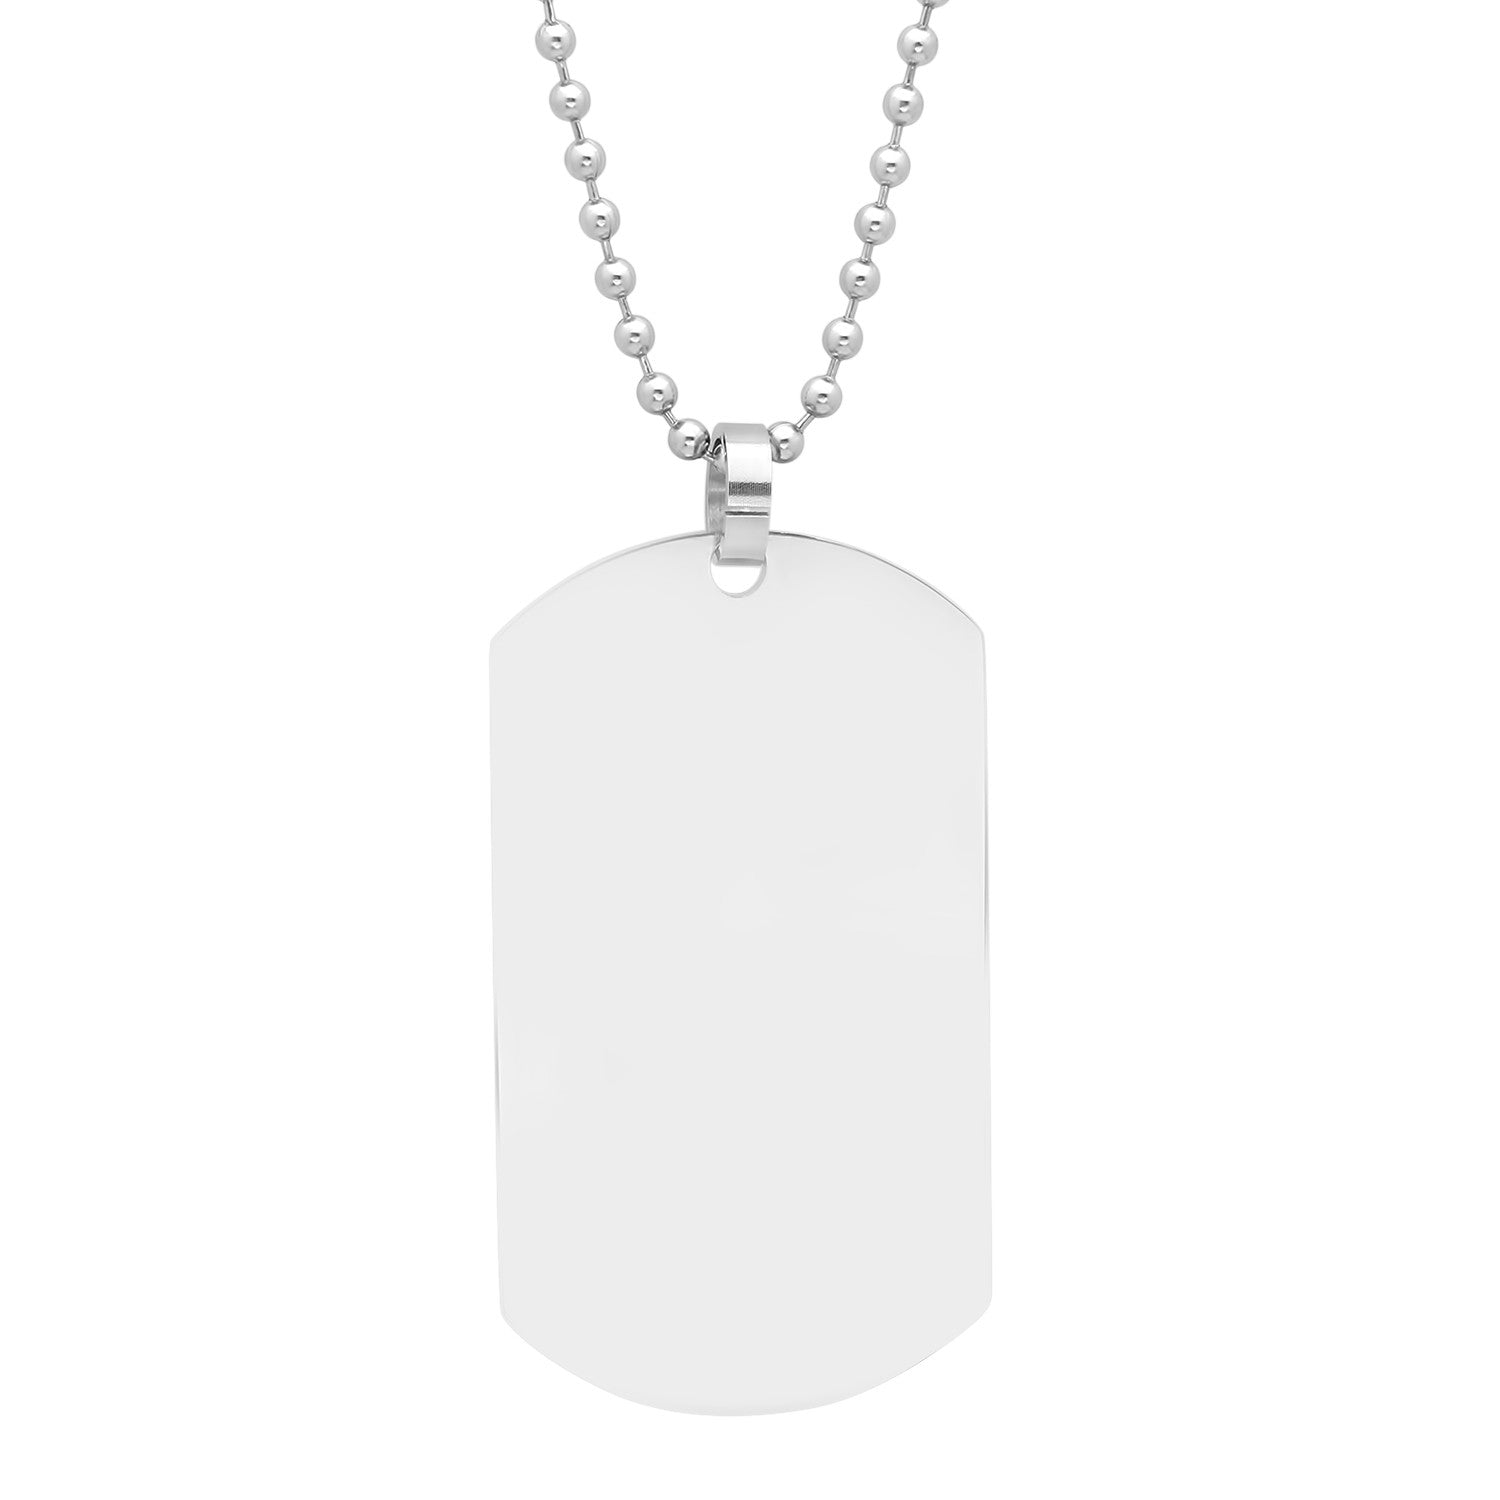 Men's Stainless Steel Name Tag Pendant